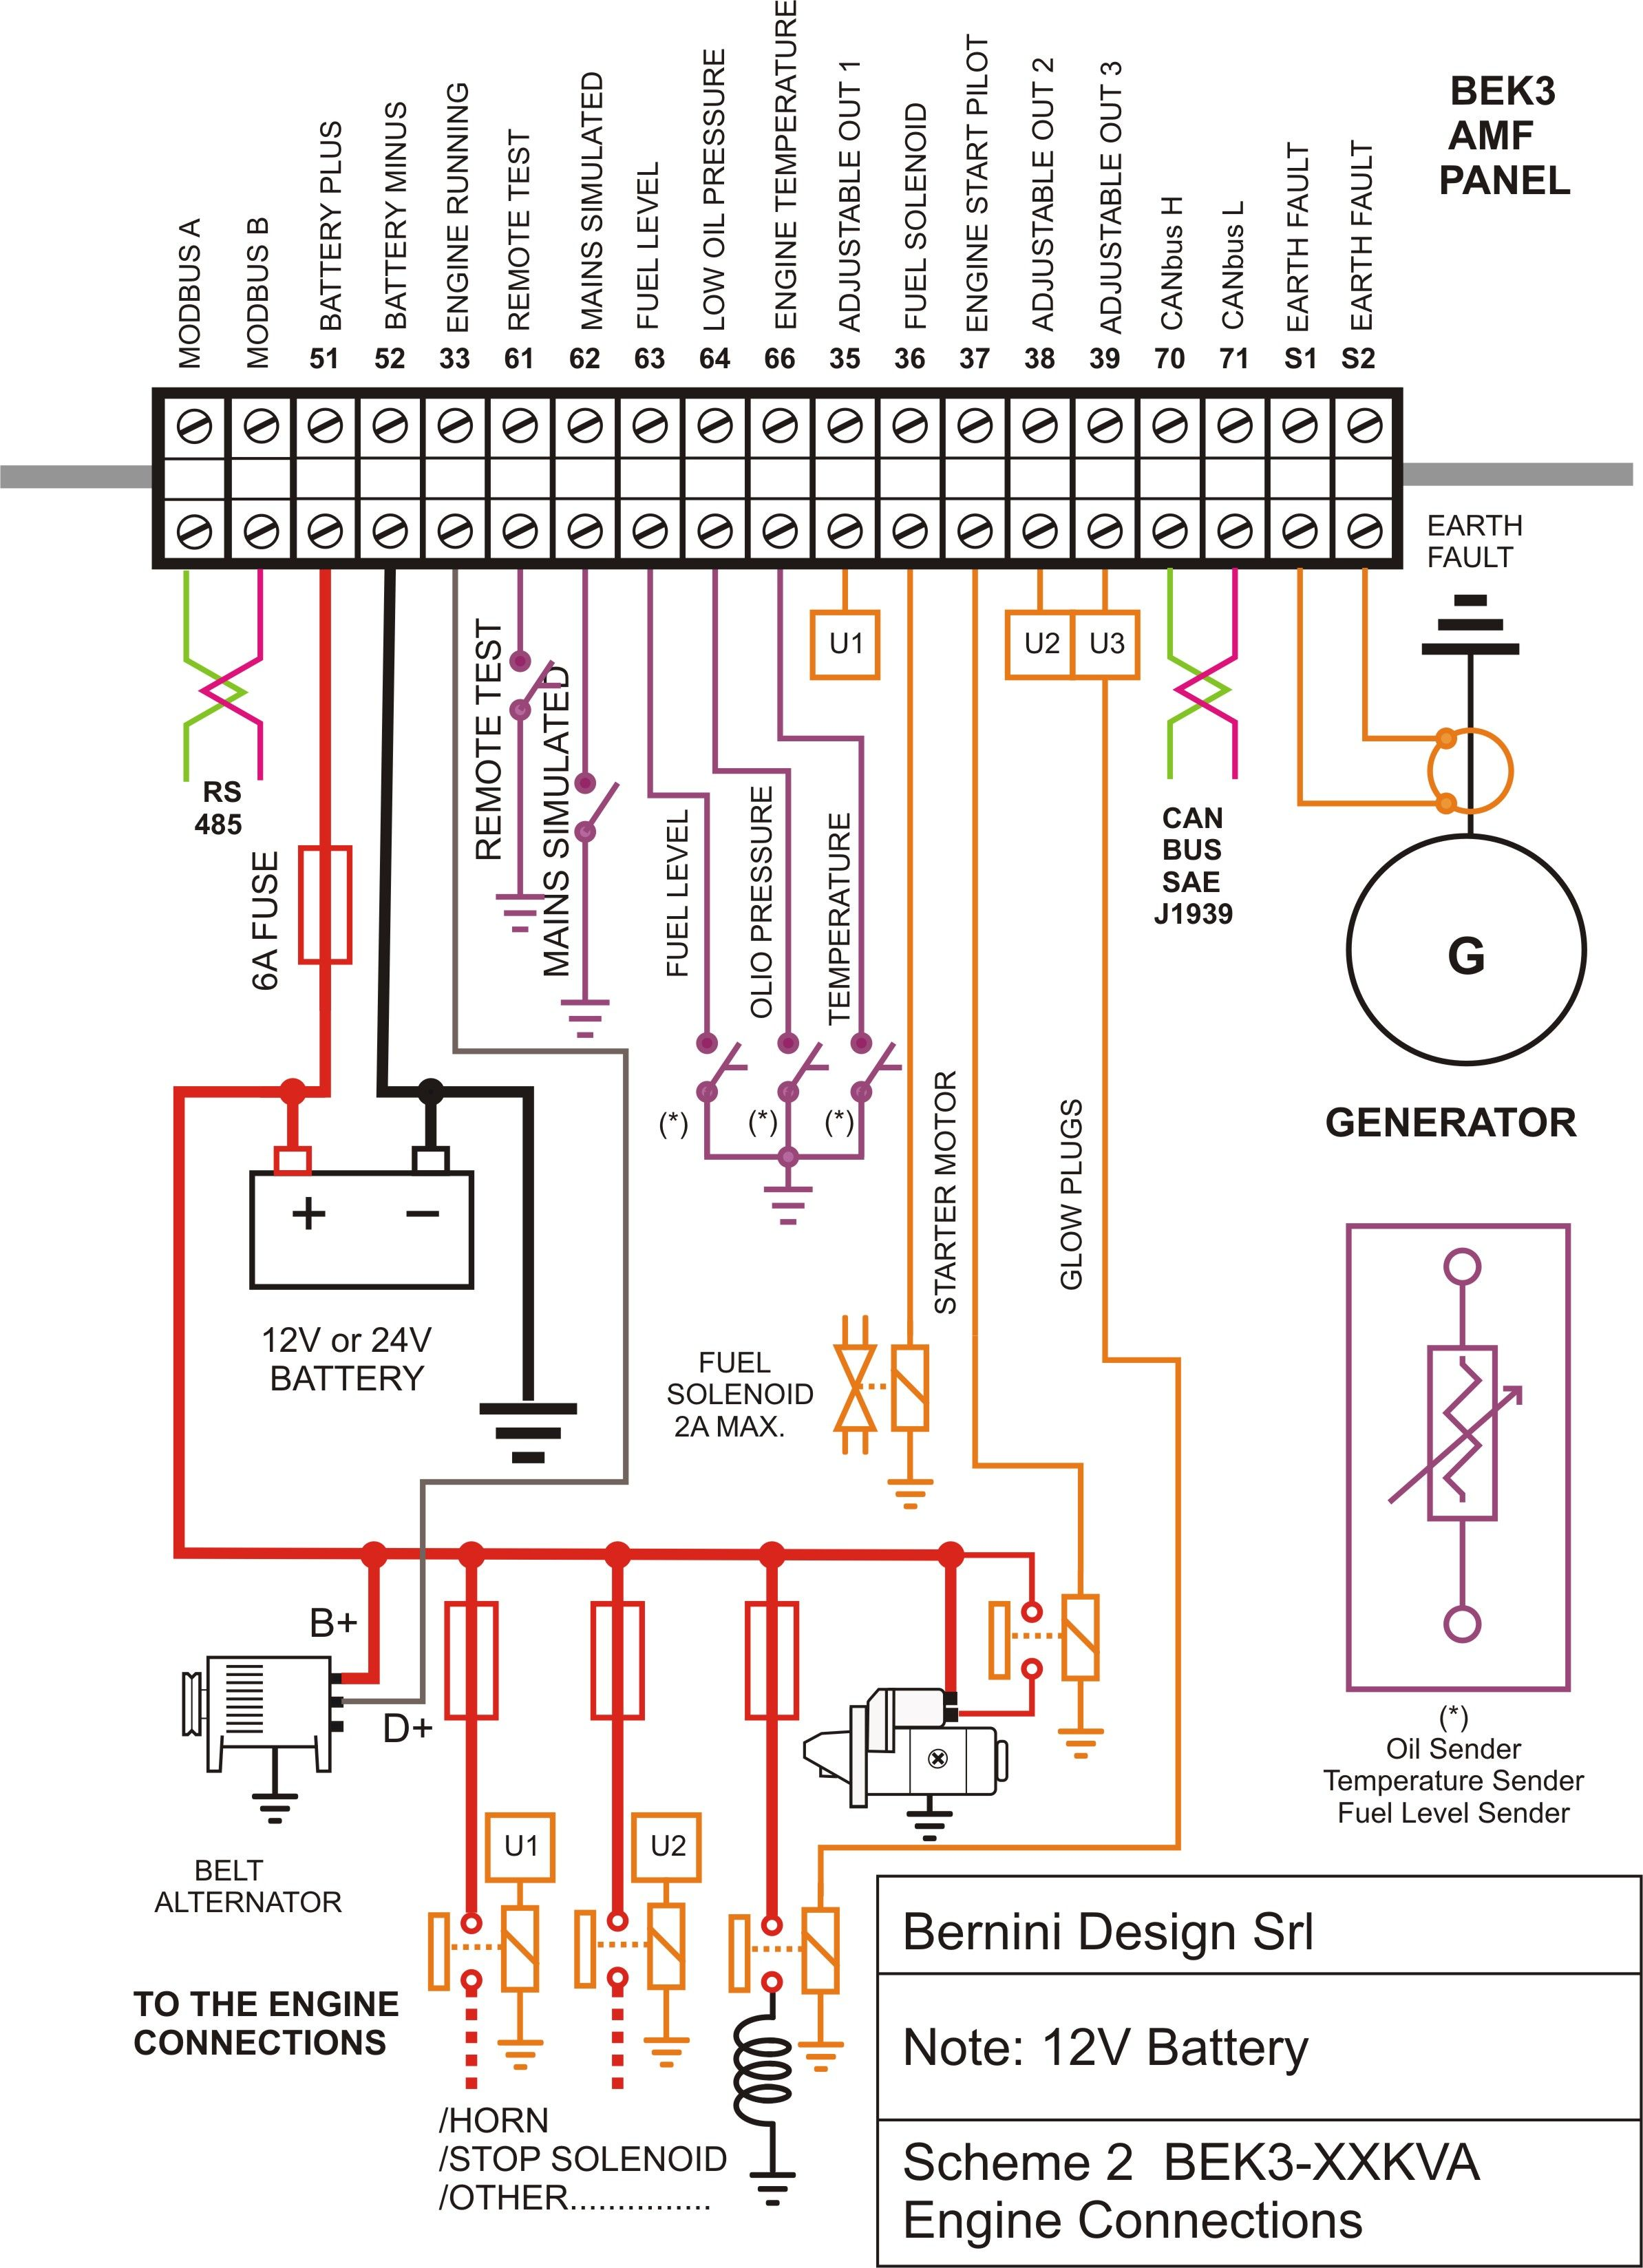 Control Wiring Diagram Symbols List Of Schematic Circuit 1az Ecm Wire 2003 Diesel Generator Panel Engine Connections Rh Pinterest Com